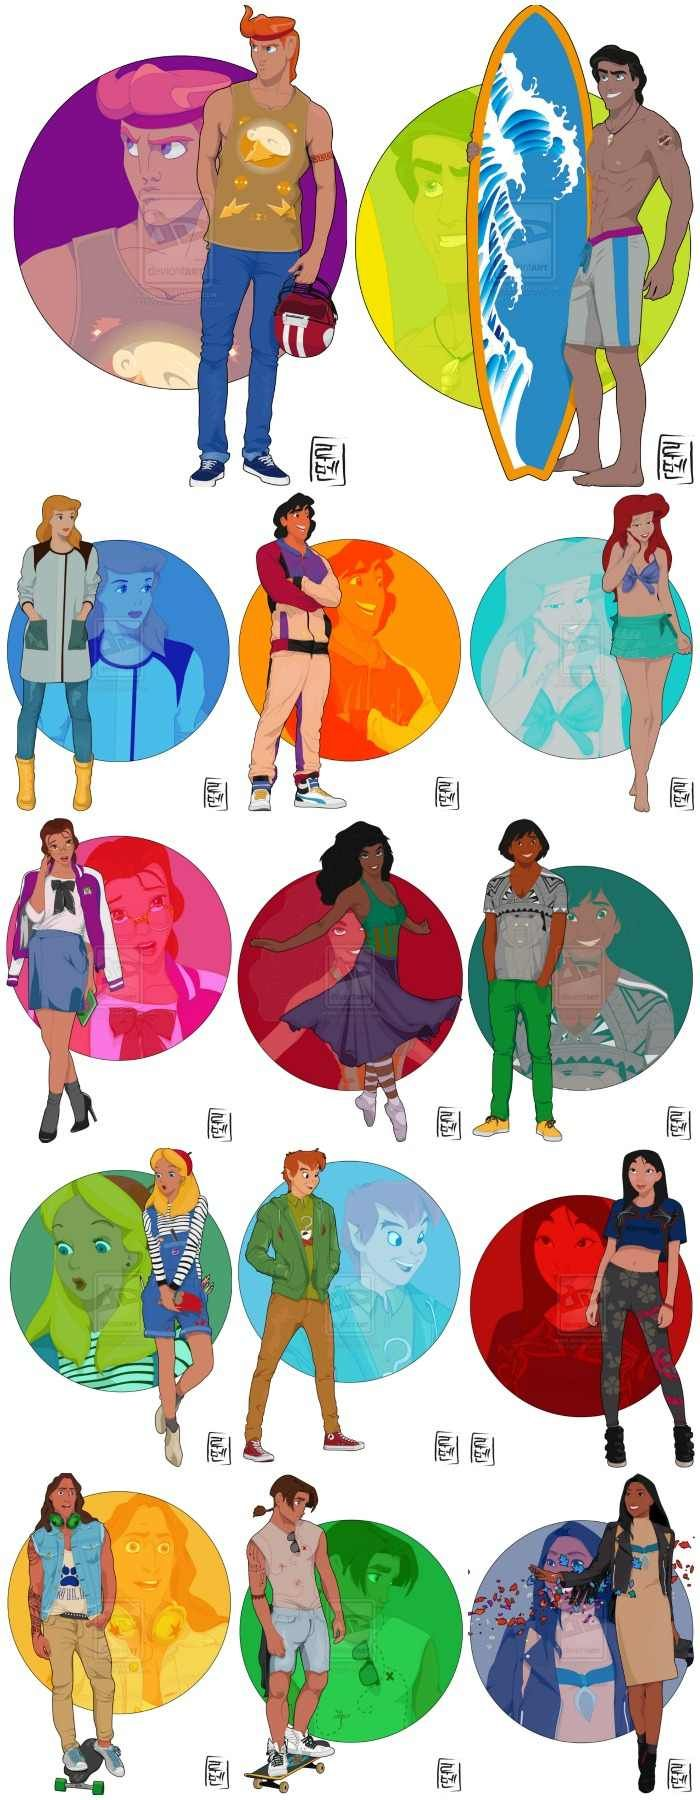 Disney characters as college students.